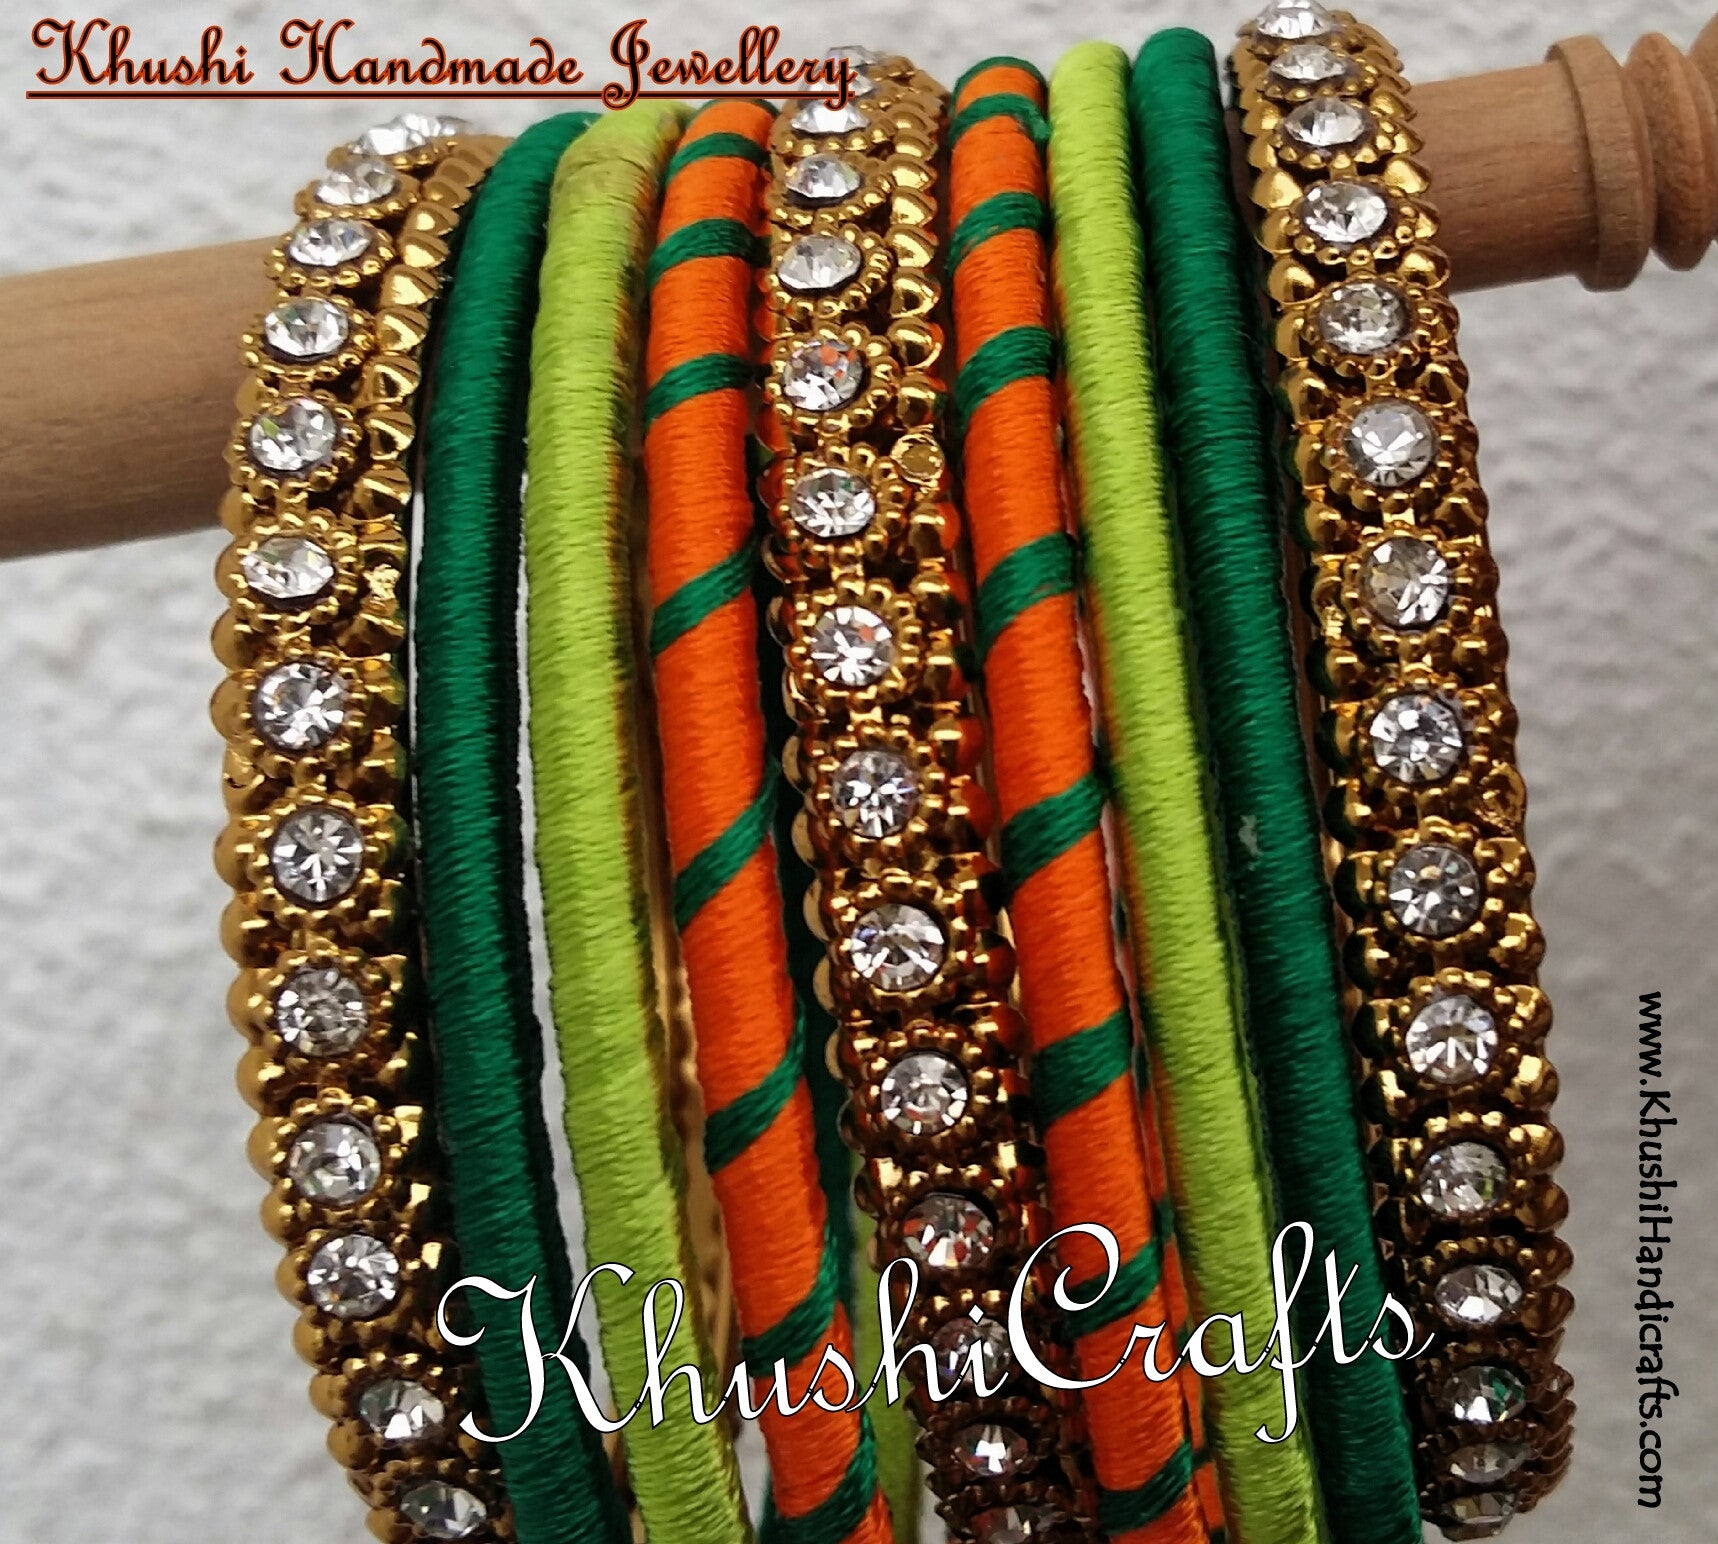 Handmade Stylish Silk Bangles in Orange and shades of Green - Khushi Handmade Jewellery